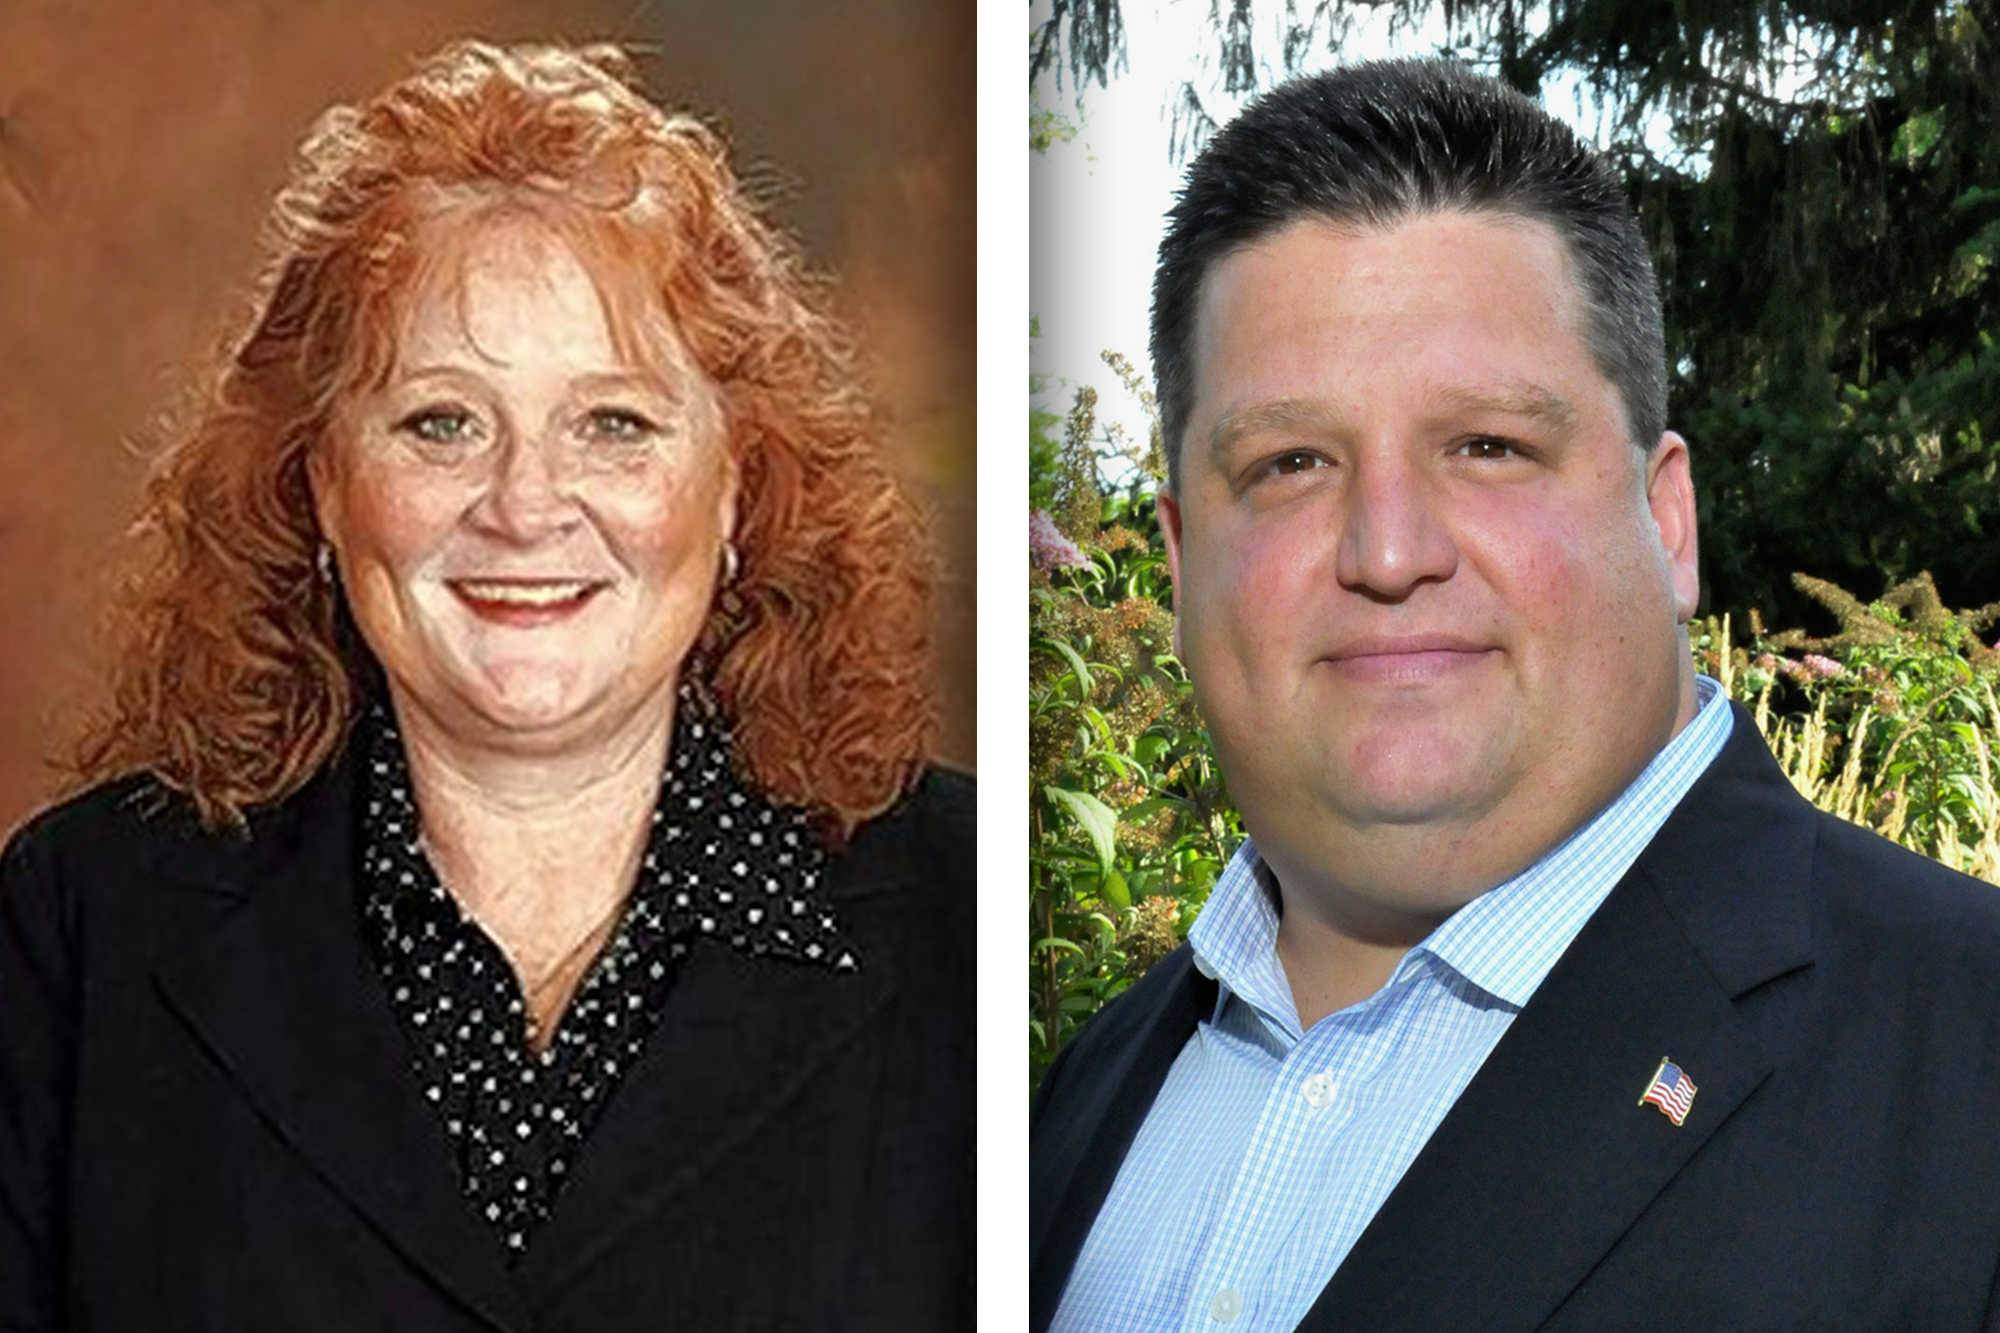 Democrat Laura Murphy, left, and Republican Mel Thillens are candidates for 28th District in the State Senate.